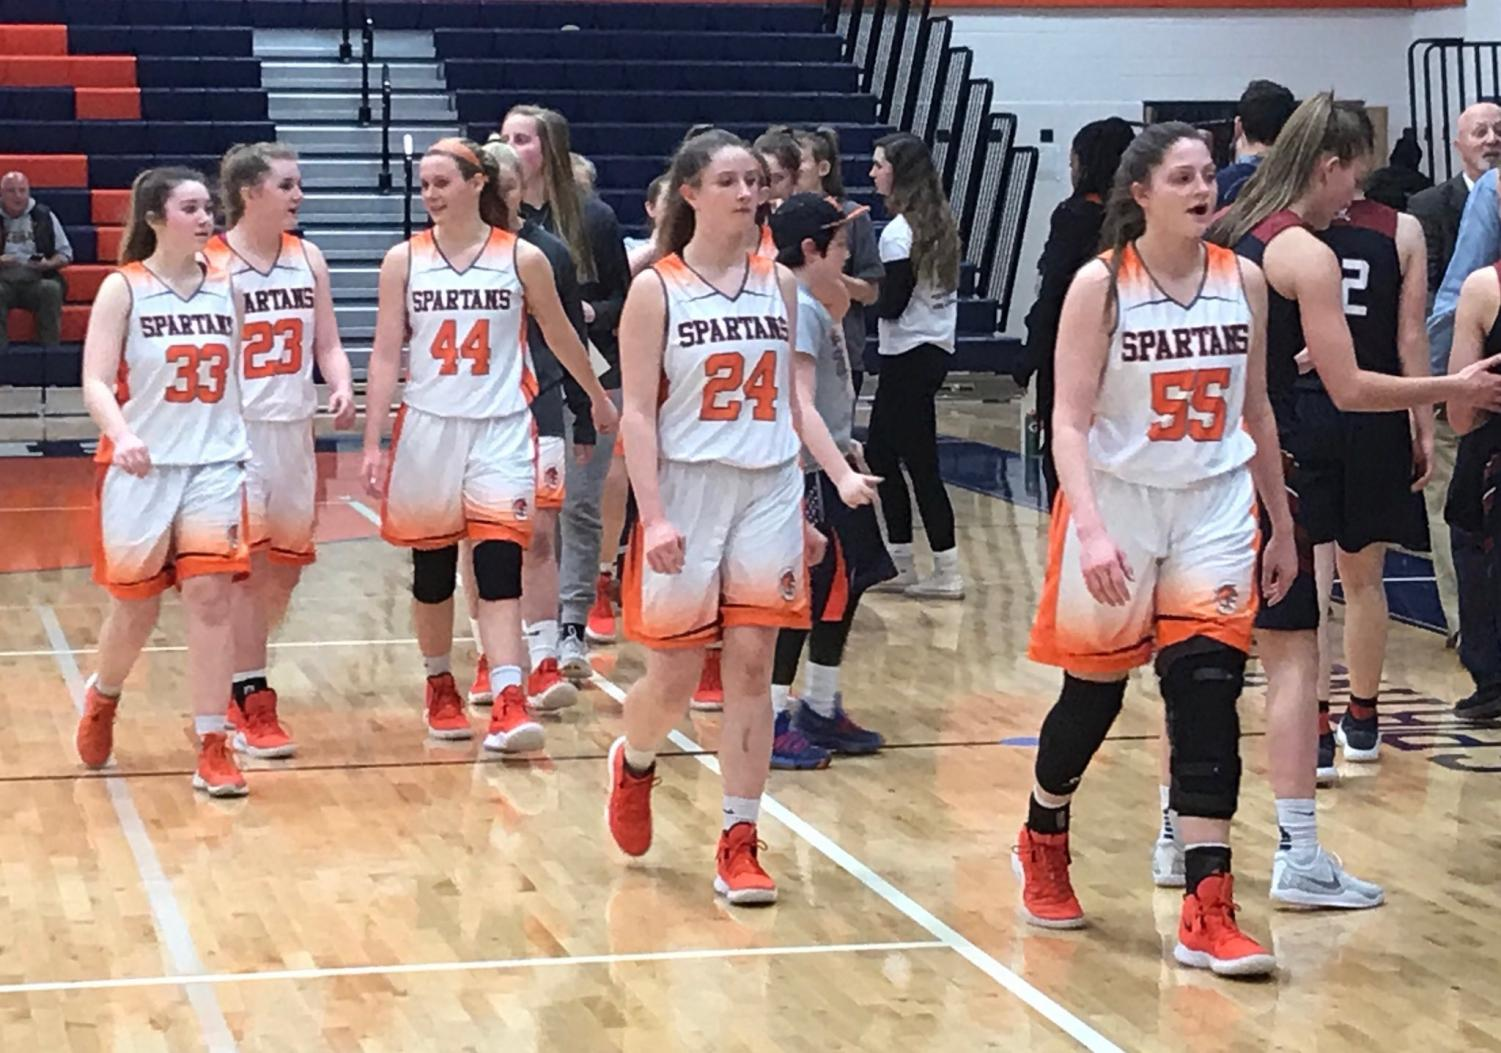 The WS Girls' Varsity basketball team walks off the court after securing a victory against Lake Braddock, earning themselves a first round bye at the district tournament. The final score of the game was a close 32-31, Spartans on top.